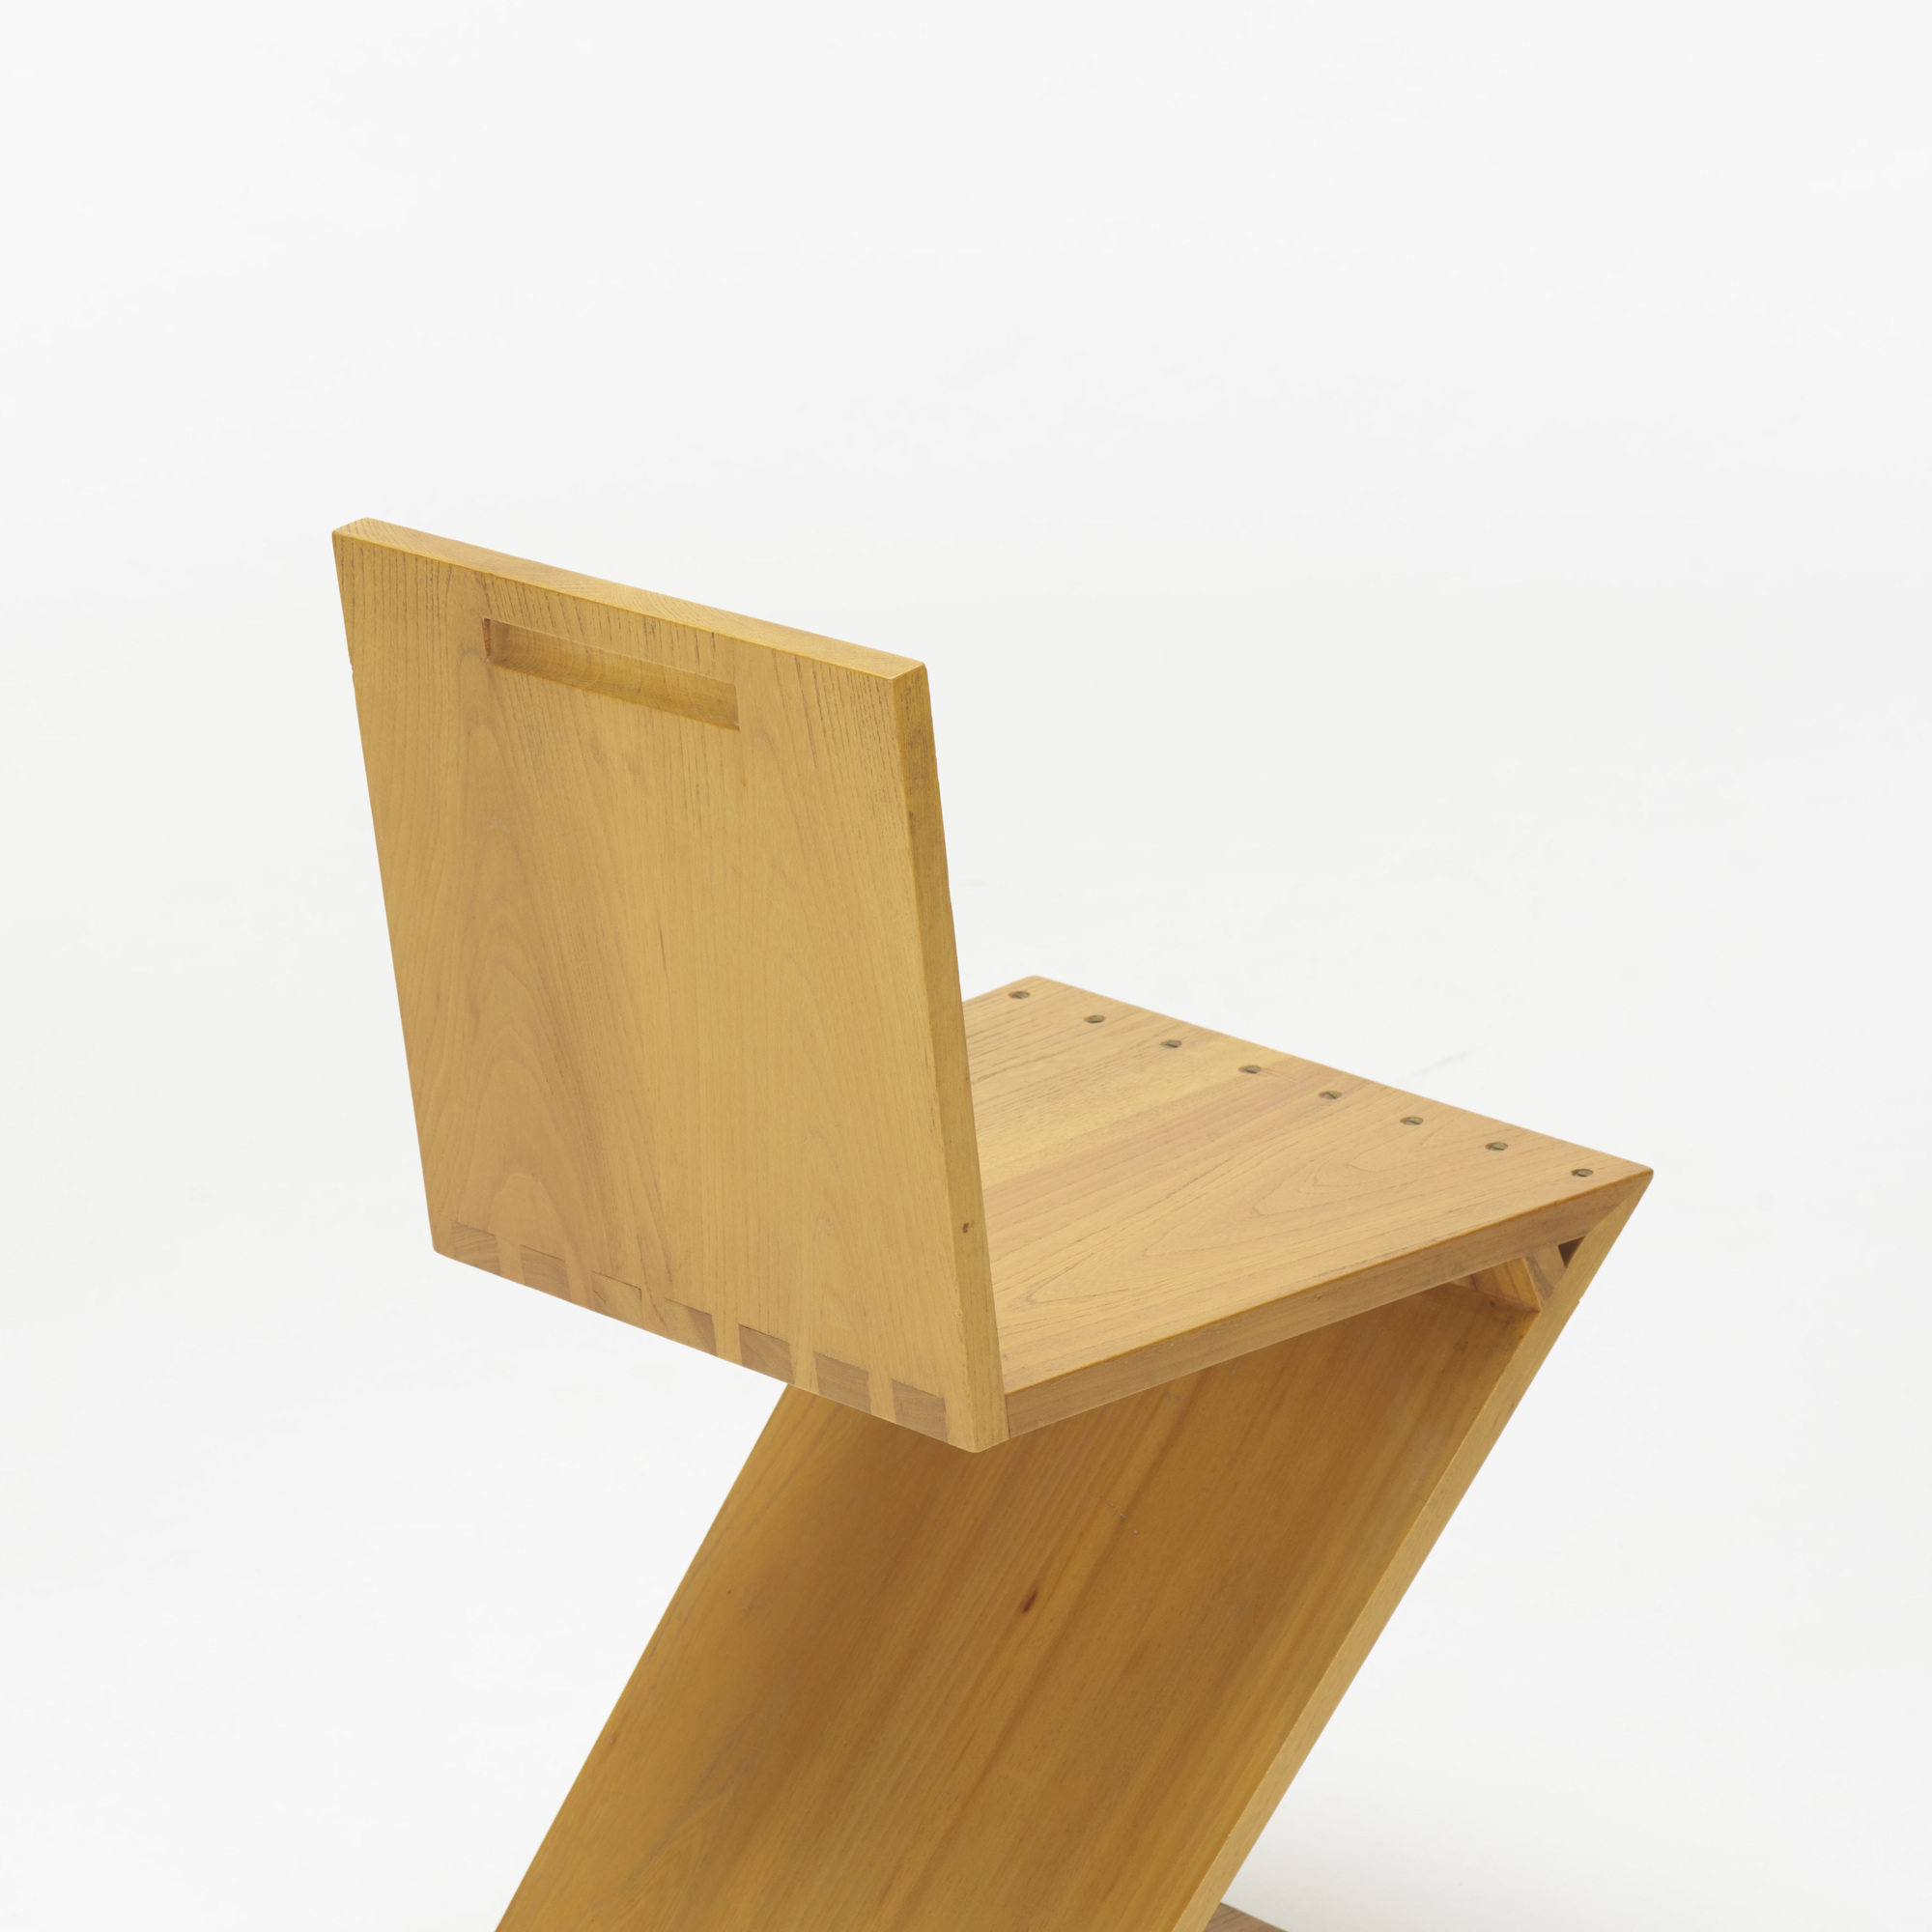 ... 110 Gerrit Rietveld / Zig-Zag chair (3 of 4) & 110: GERRIT RIETVELD Zig-Zag chair u003c Design  26 October 2017 ...